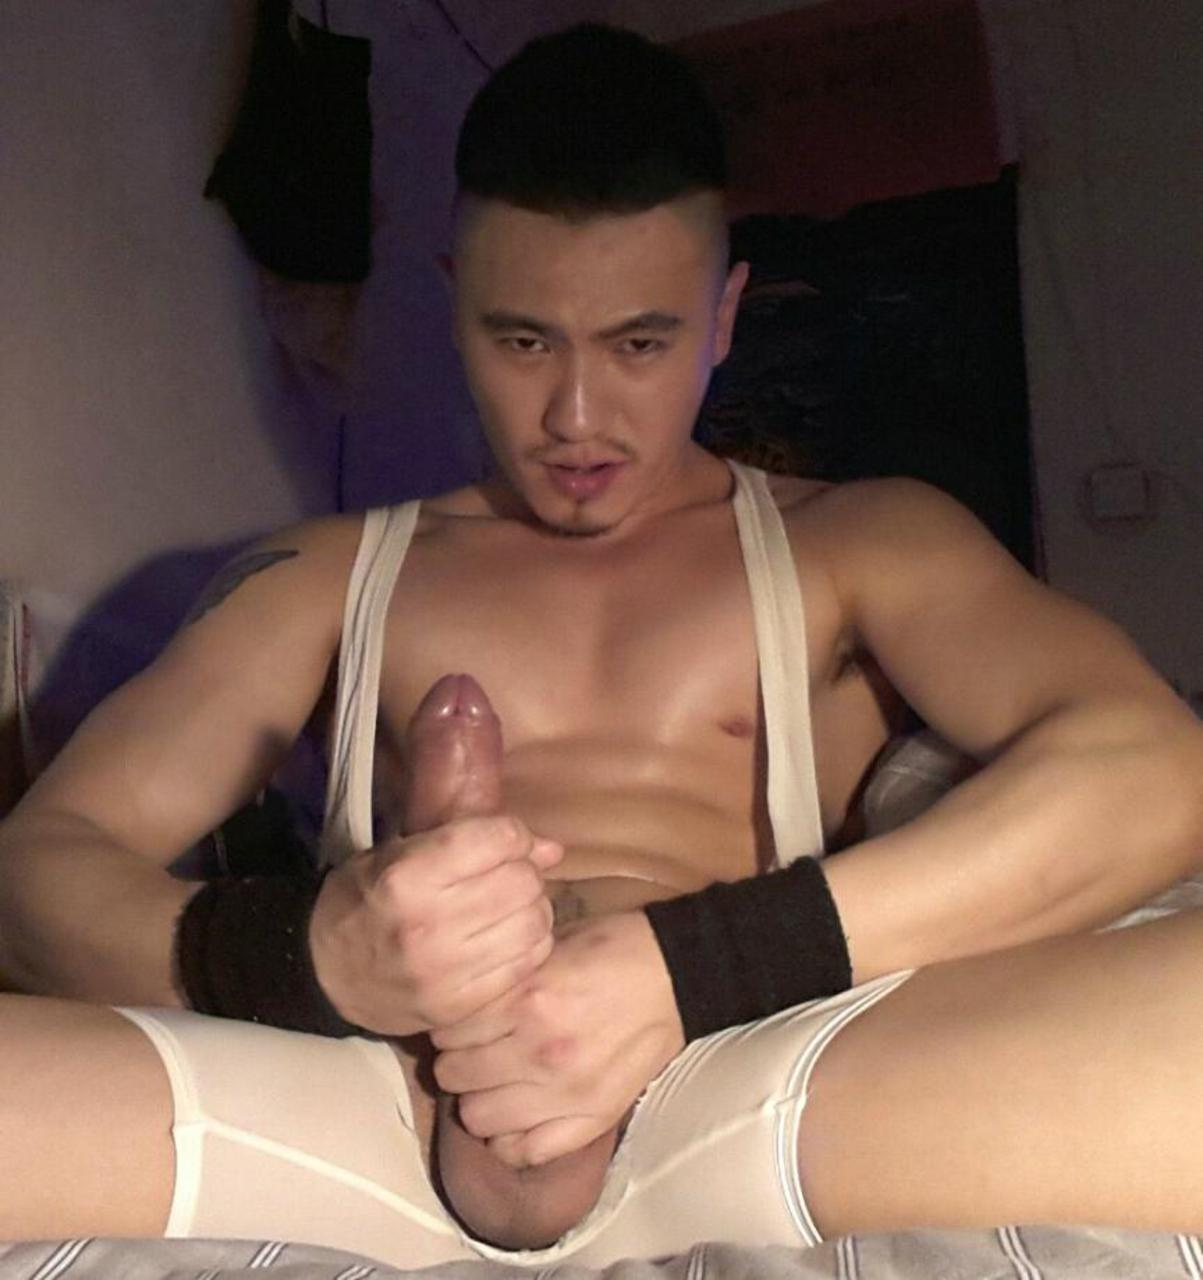 Chinese Men With Big Dicks